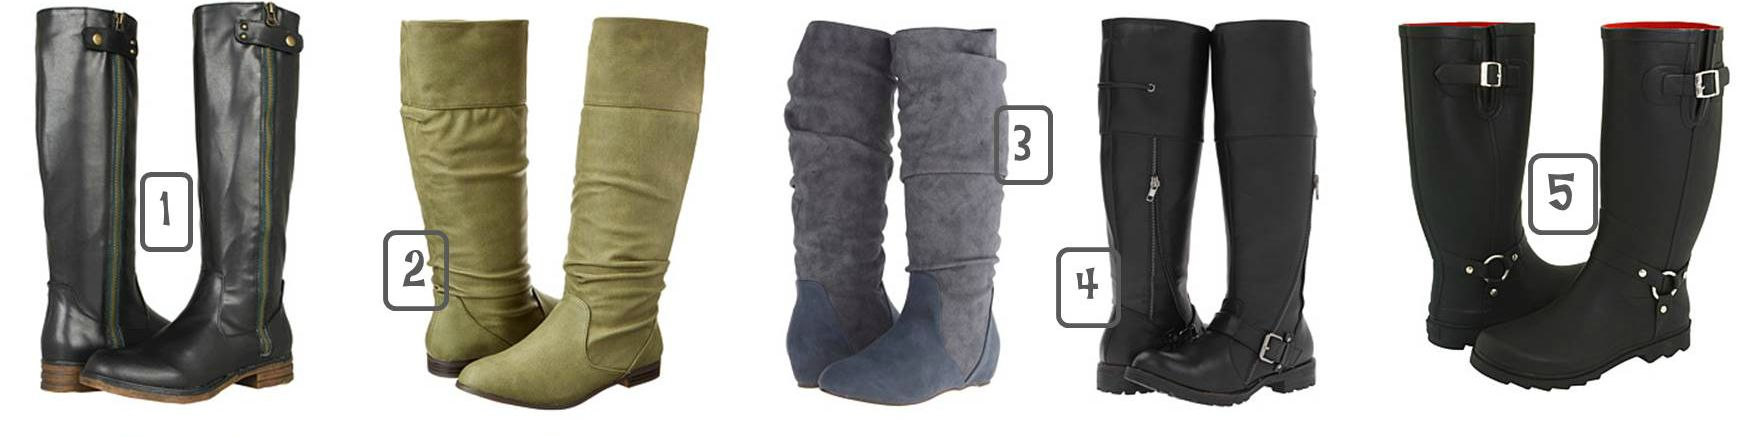 Knee High Fall Boots